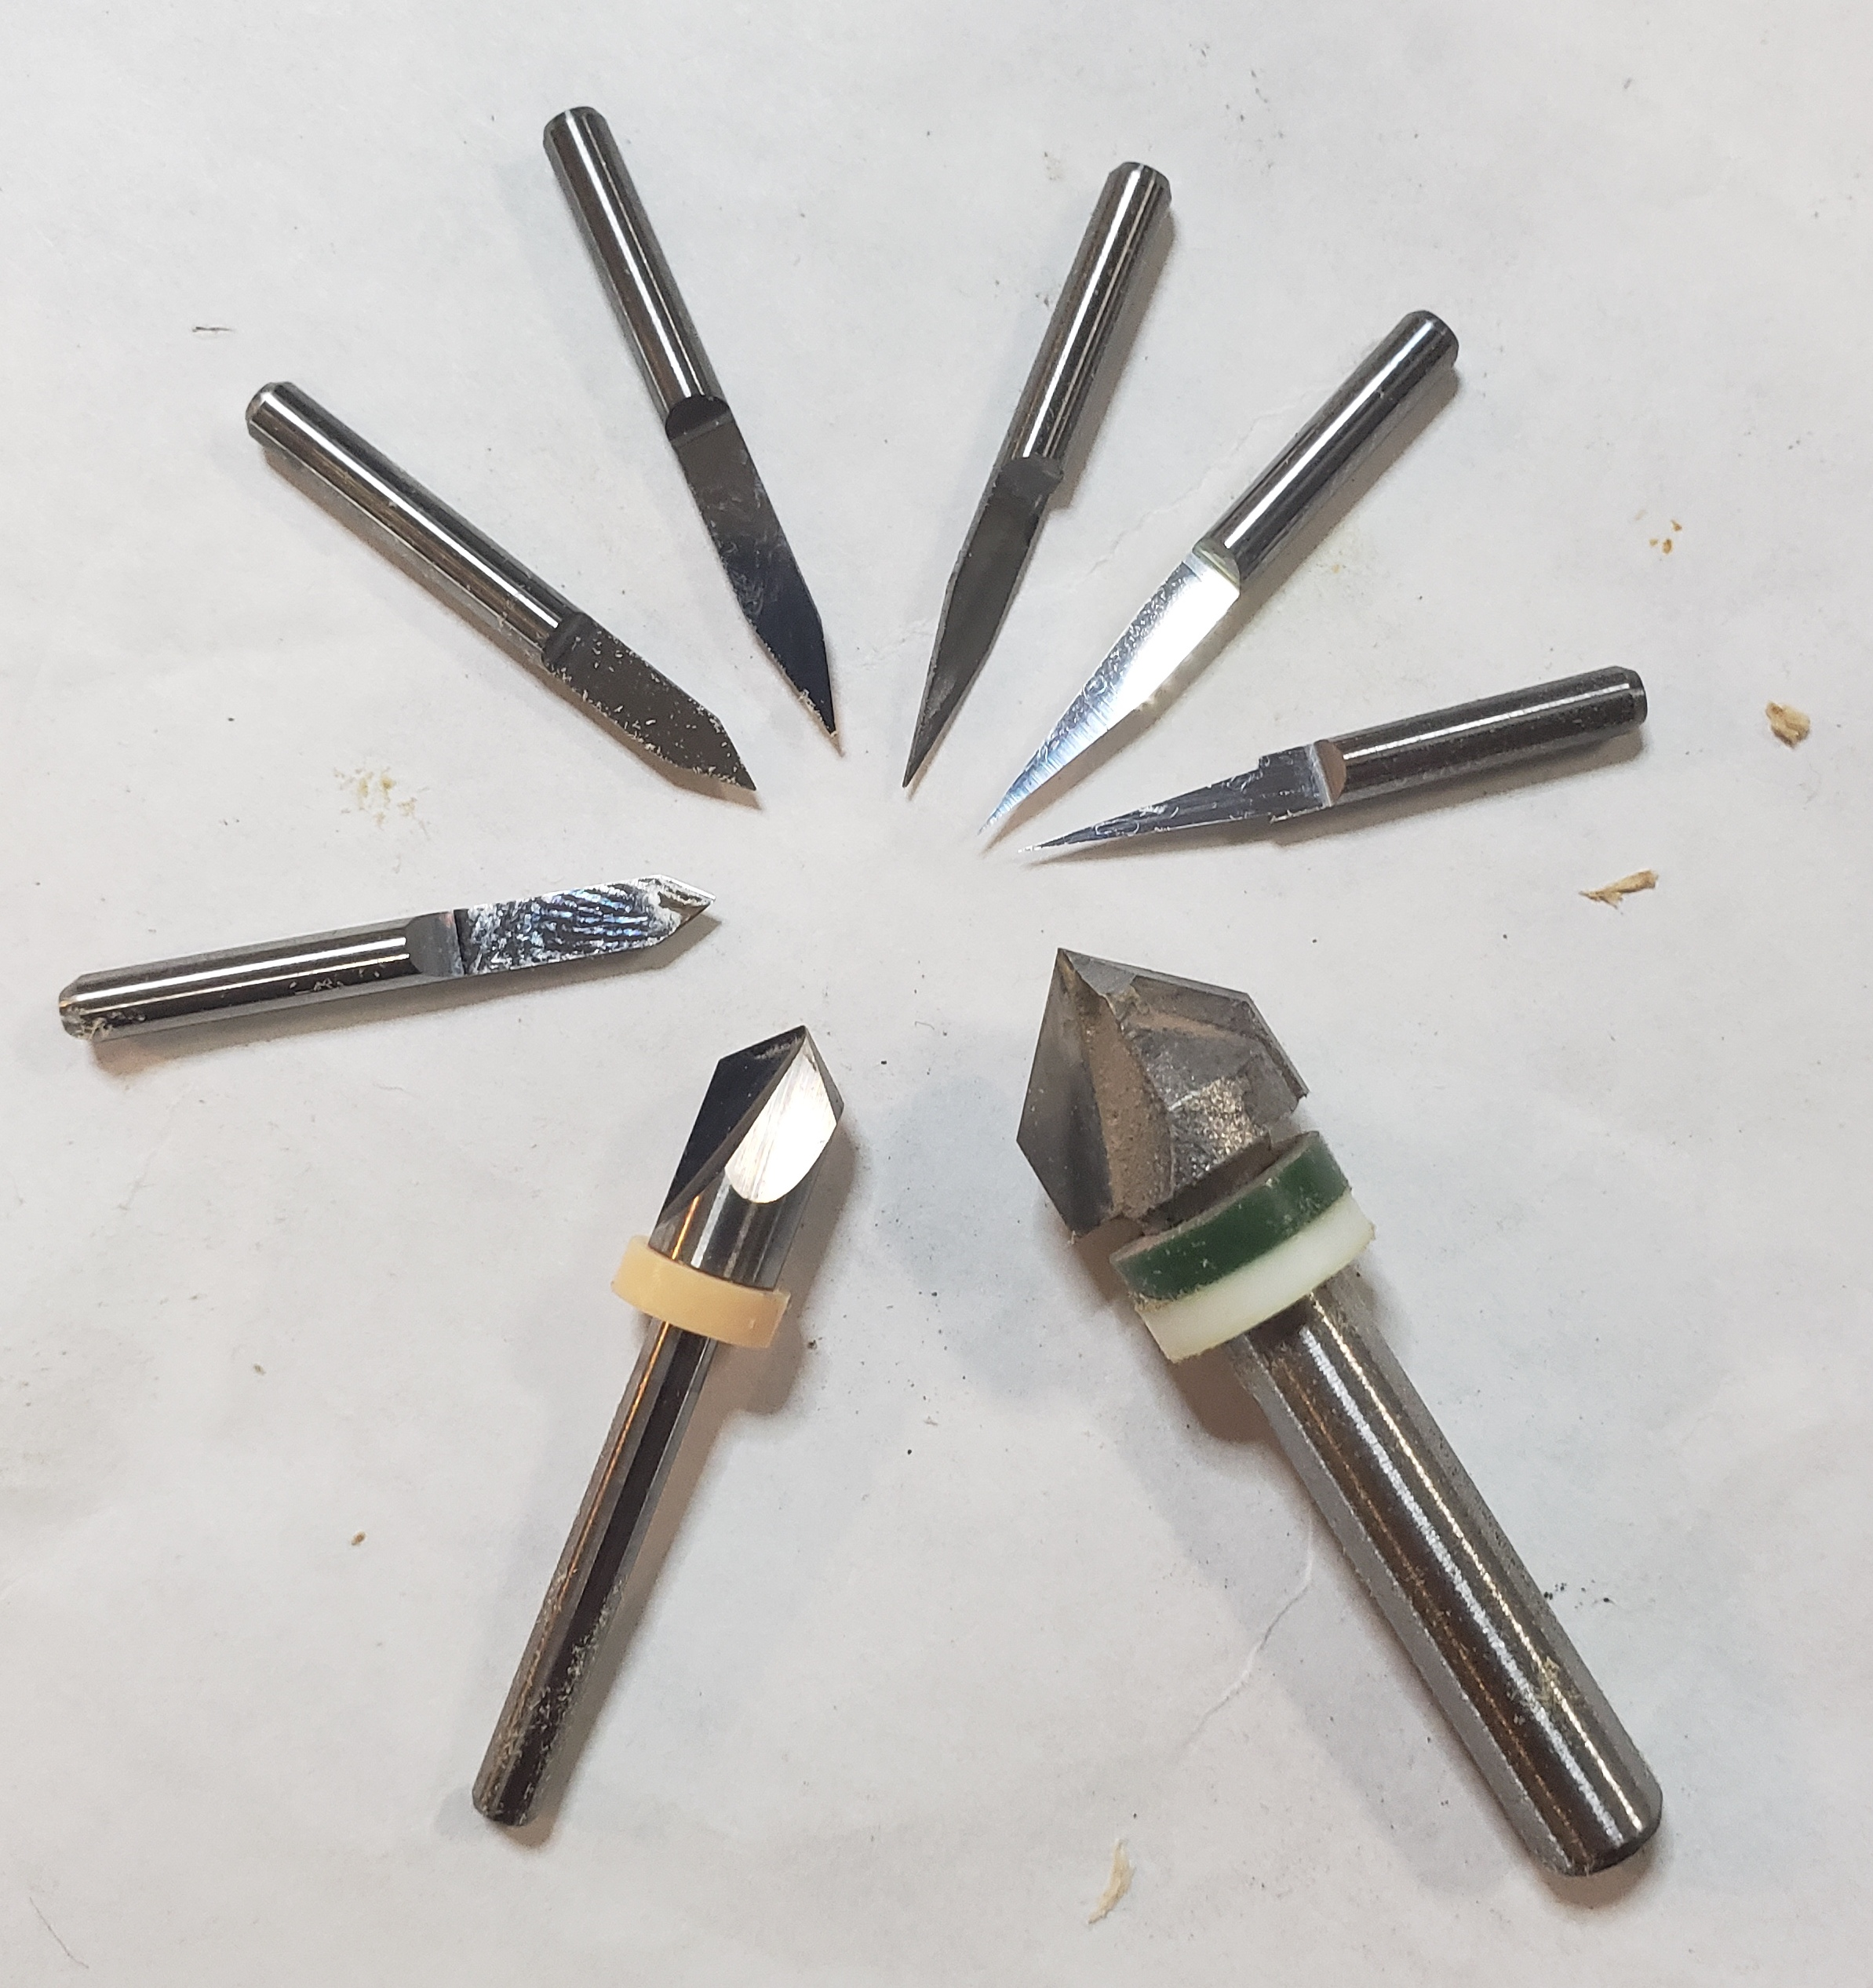 "Starting with the small bit at the 3 o'clock position and going counterclockwise, the  total  angle of these bits are 5, 10, 20, 30, 45, 60, and - with the two bigger bits - 90 & 90 degrees; the taper angle is half of the total angle. The first six all have a defined tip diameter of 0.1mm (= 1/250""), while the two larger bits don't have a tip diameter defined (but 0 or 0.1mm could be used). The total diameter of the second-through-sixth is 1/8""; the two bigger ones are 1/4"" and 1/2"" diameter. But look carefully: the first bit has a total diameter of about 3/32""; plunging deeper (or defining it as 1/8"" in software) could cause some unexpected results!"